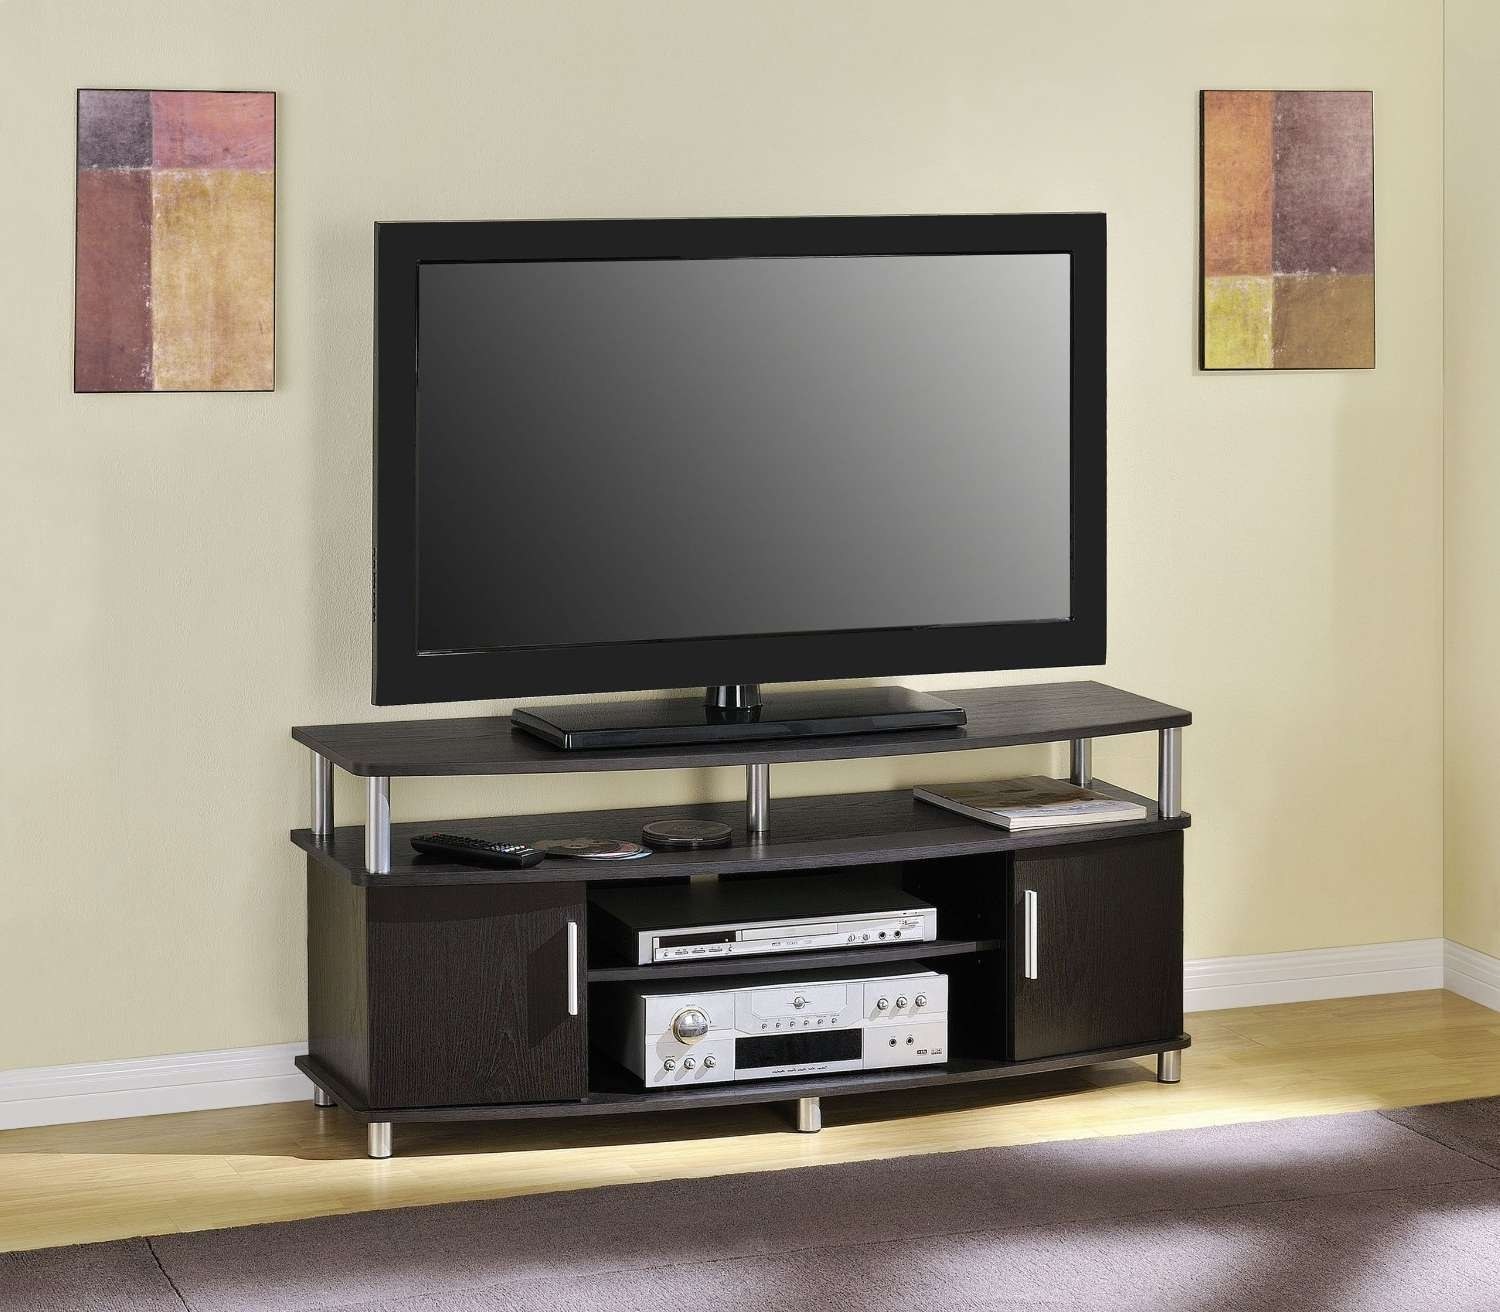 Magnificent Sony Flat Screen Hdtv Also Stand Flat Screen Tv With Regard To Wide Screen Tv Stands (View 11 of 15)